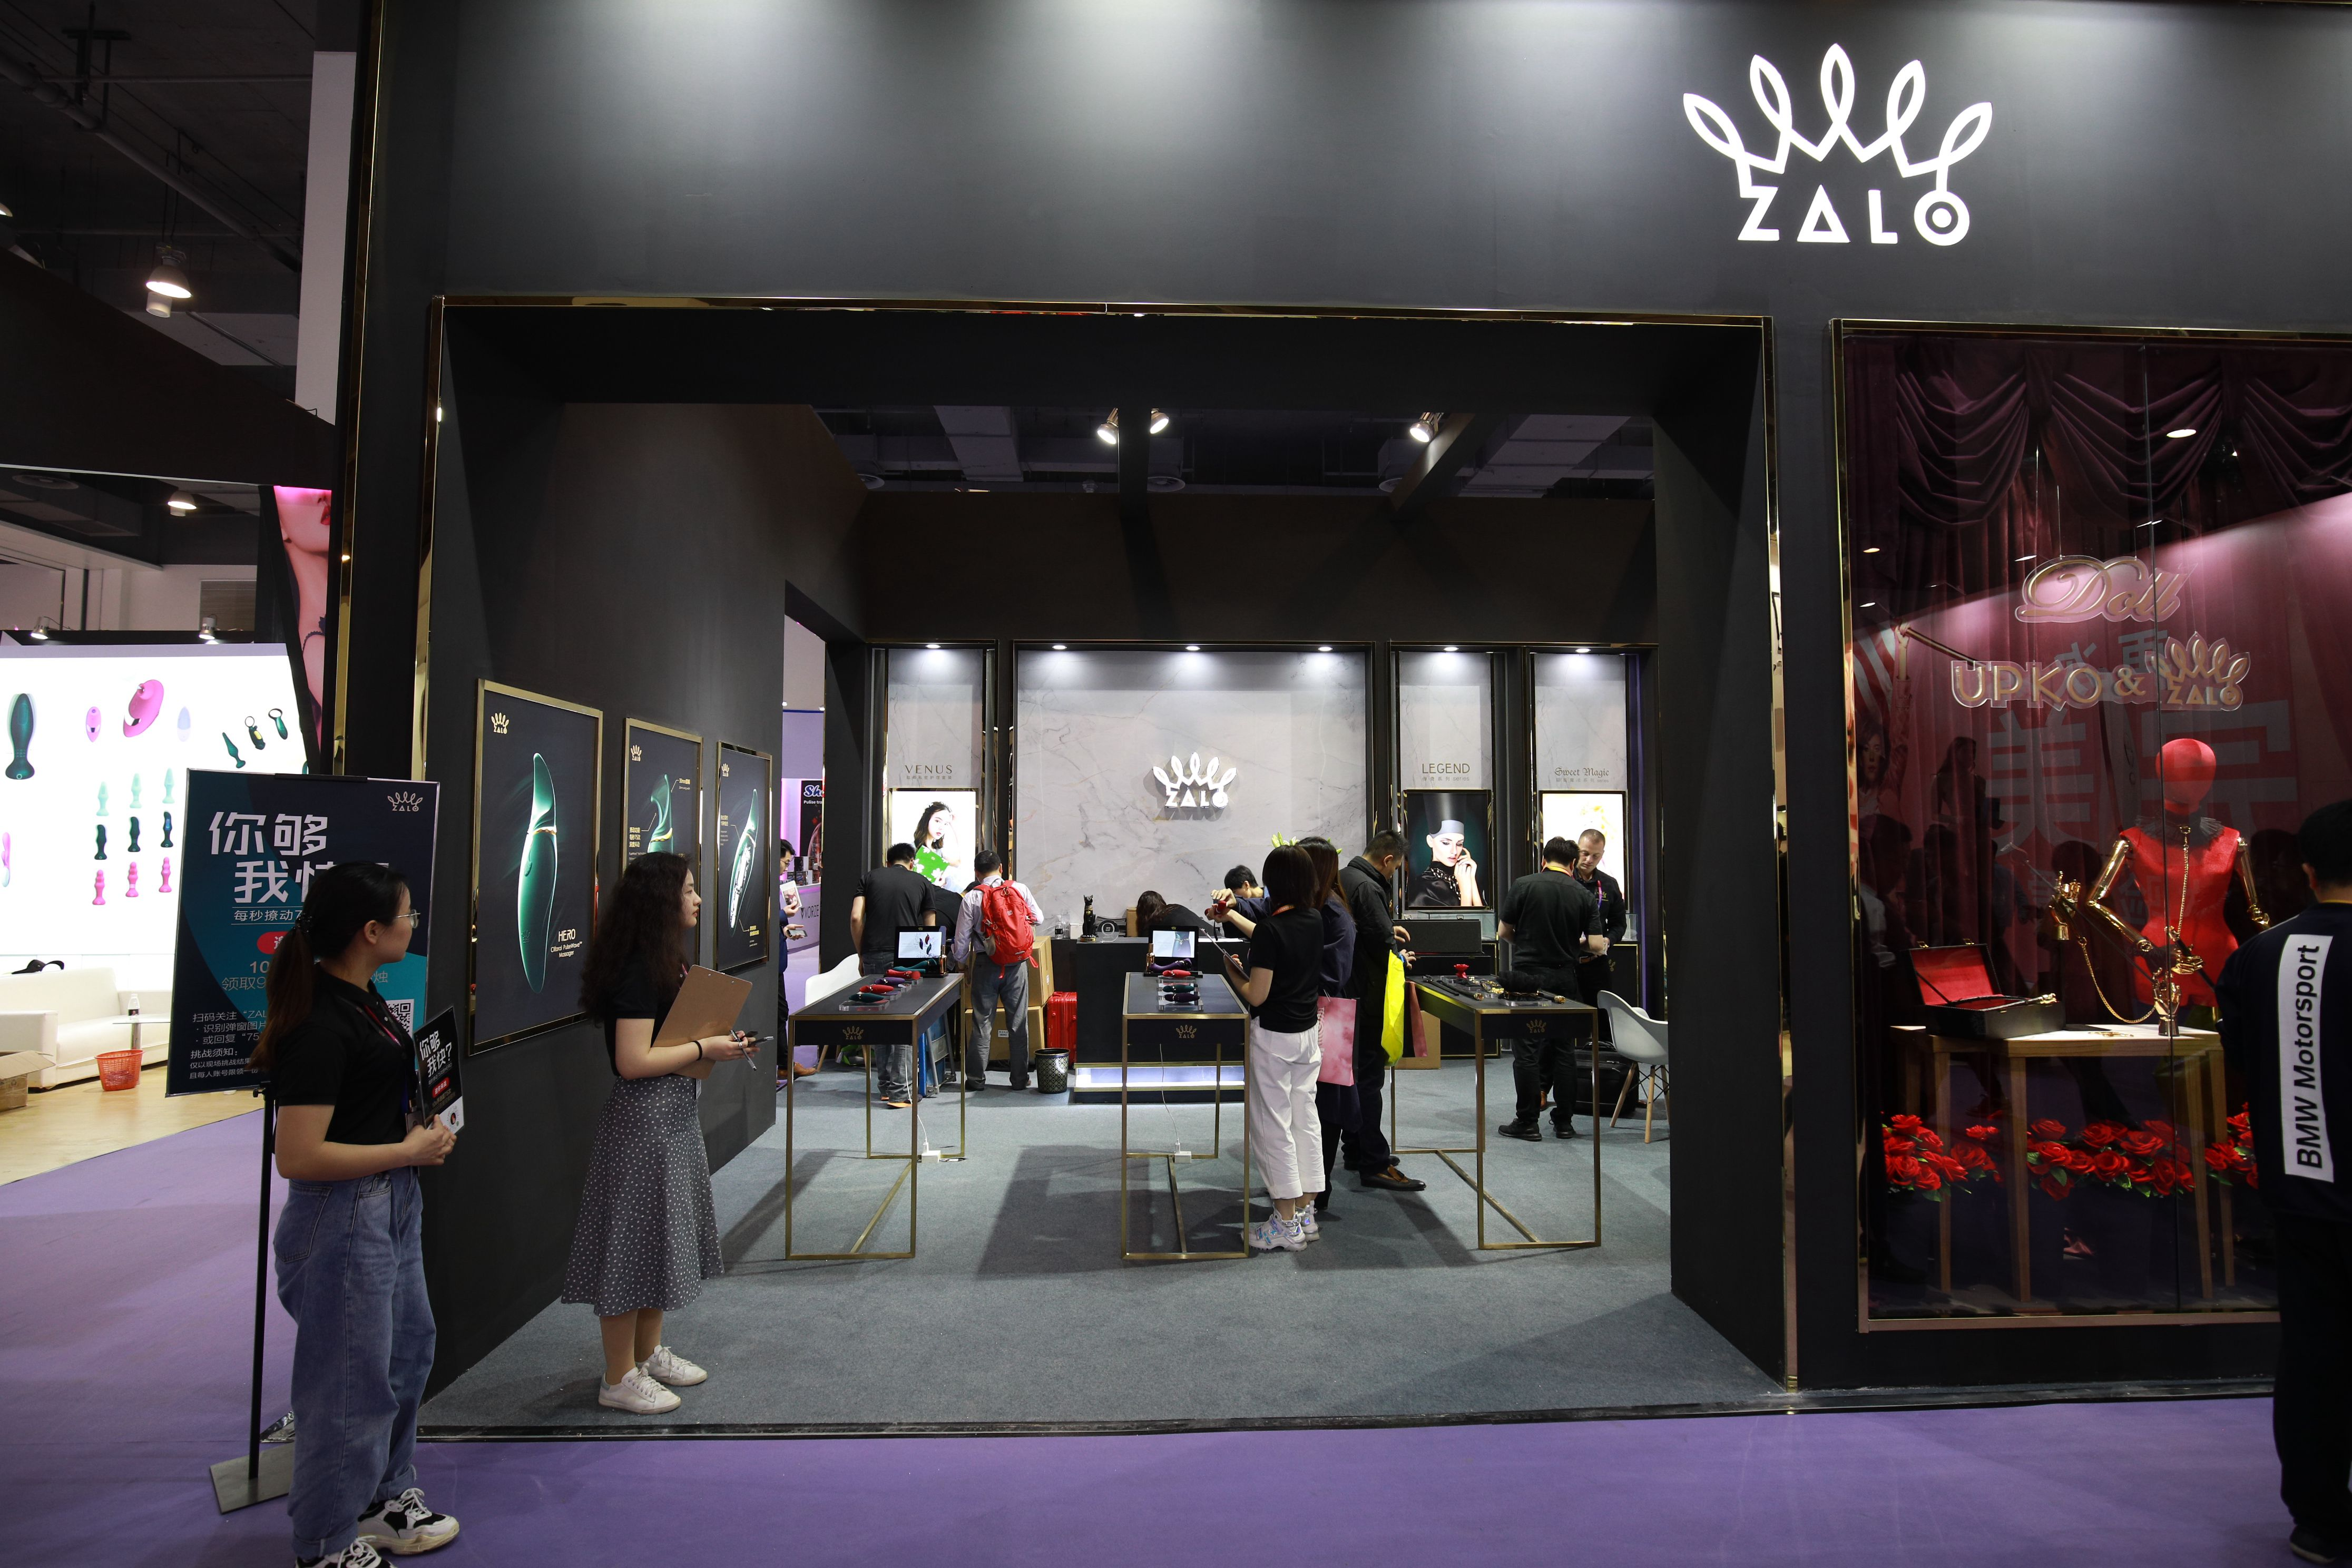 ZALO at the 2019 Shanghai ADC EXPO